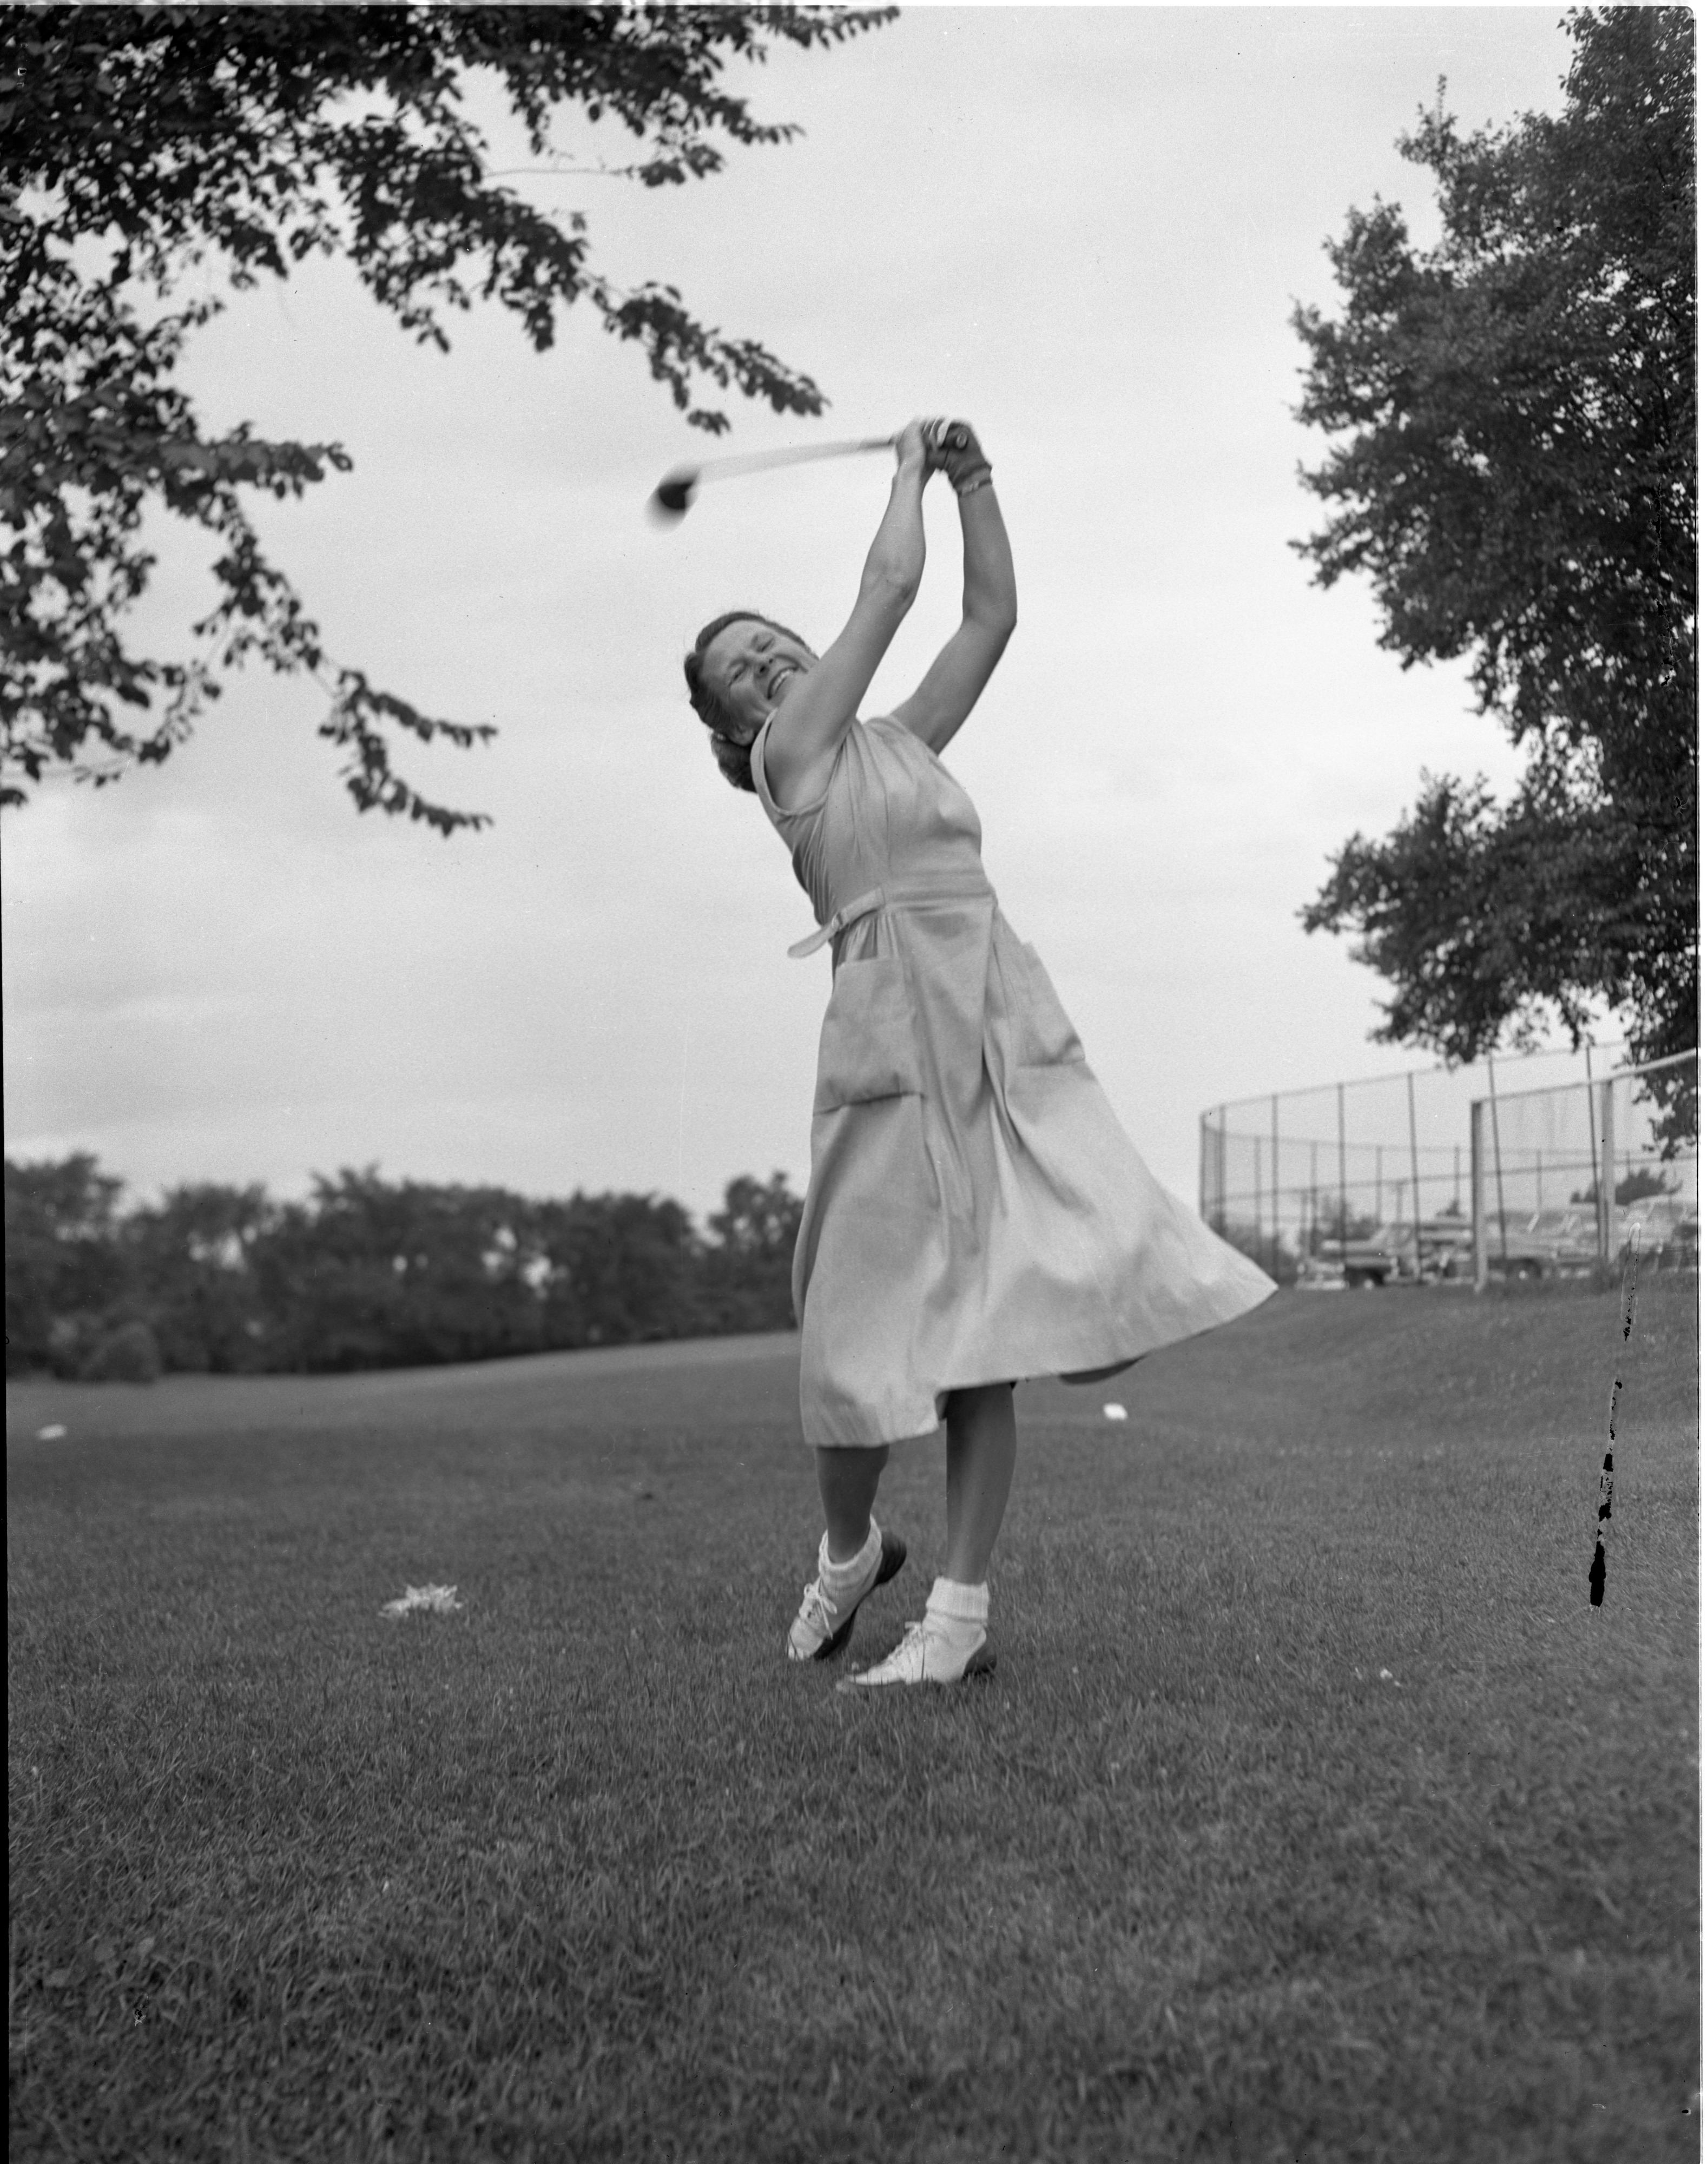 Mabel Nesbit During Qualifying Rounds For Women's City Golf Tournament, July 1948 image